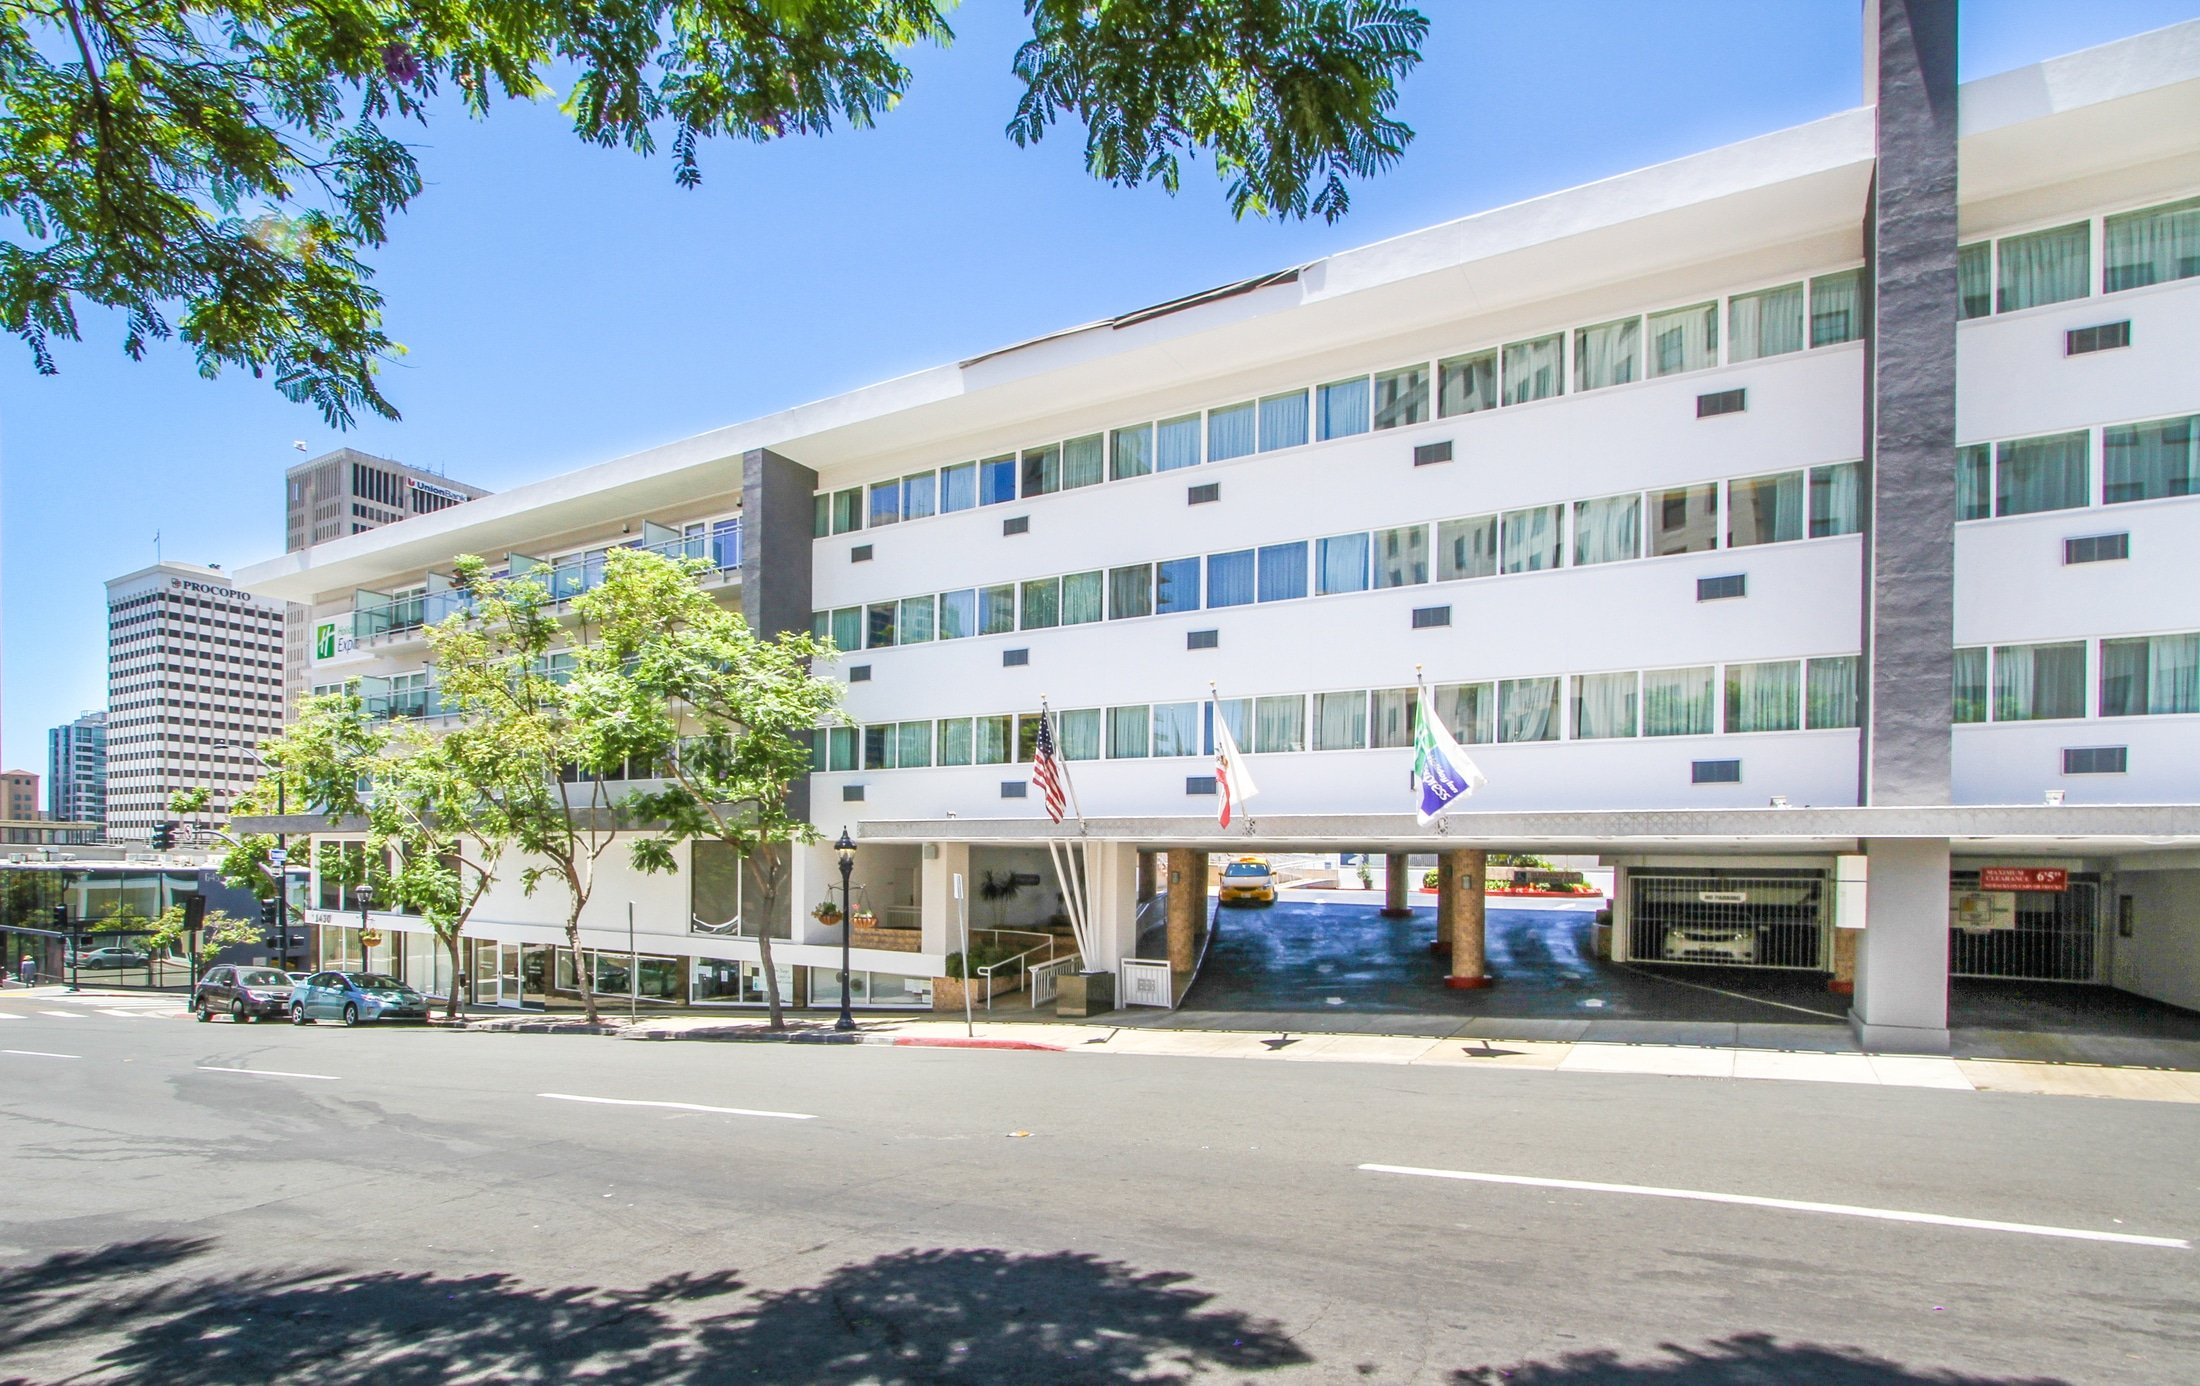 Street view of Holiday Inn Express Downtown, one of the best hotels near San Diego Zoo.